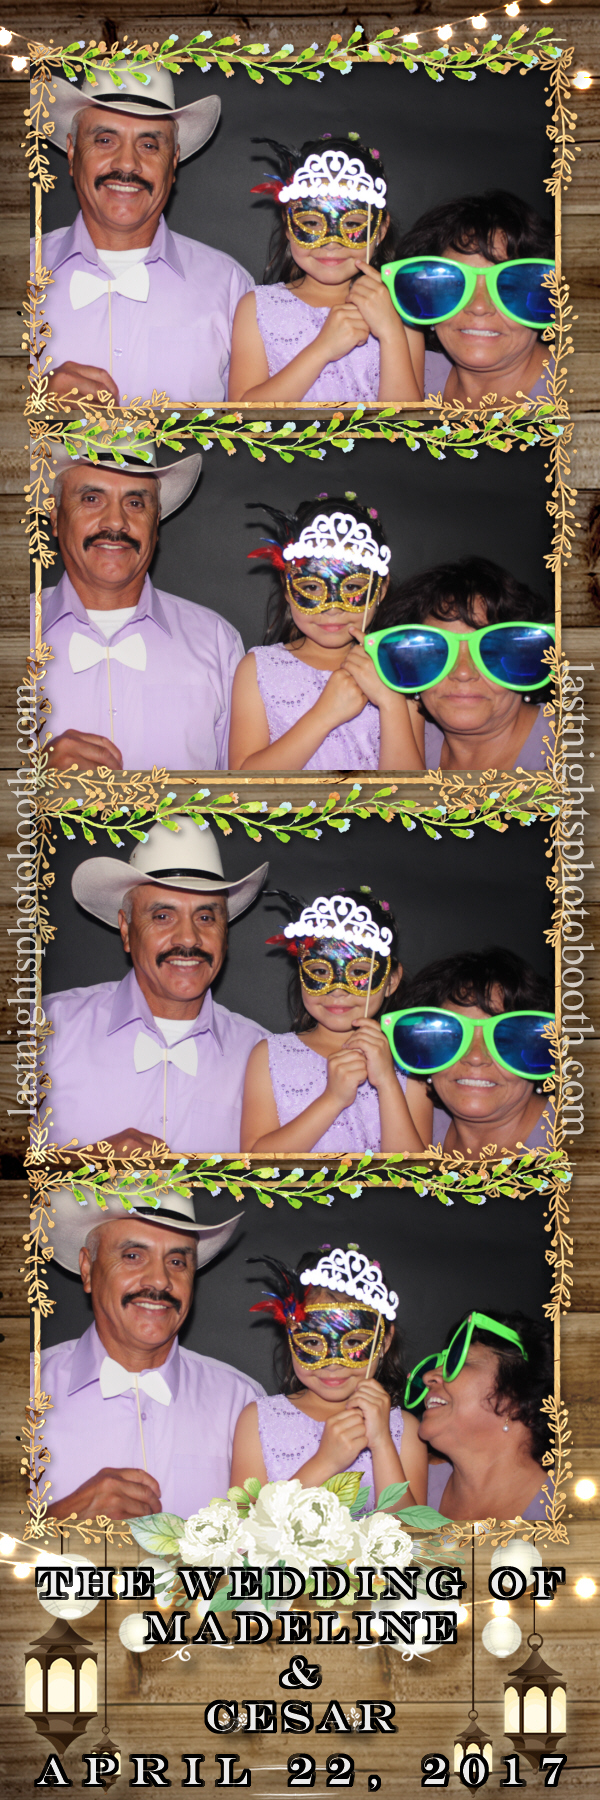 Photo Booth Rental For Madeline and Cesar Wedding_03